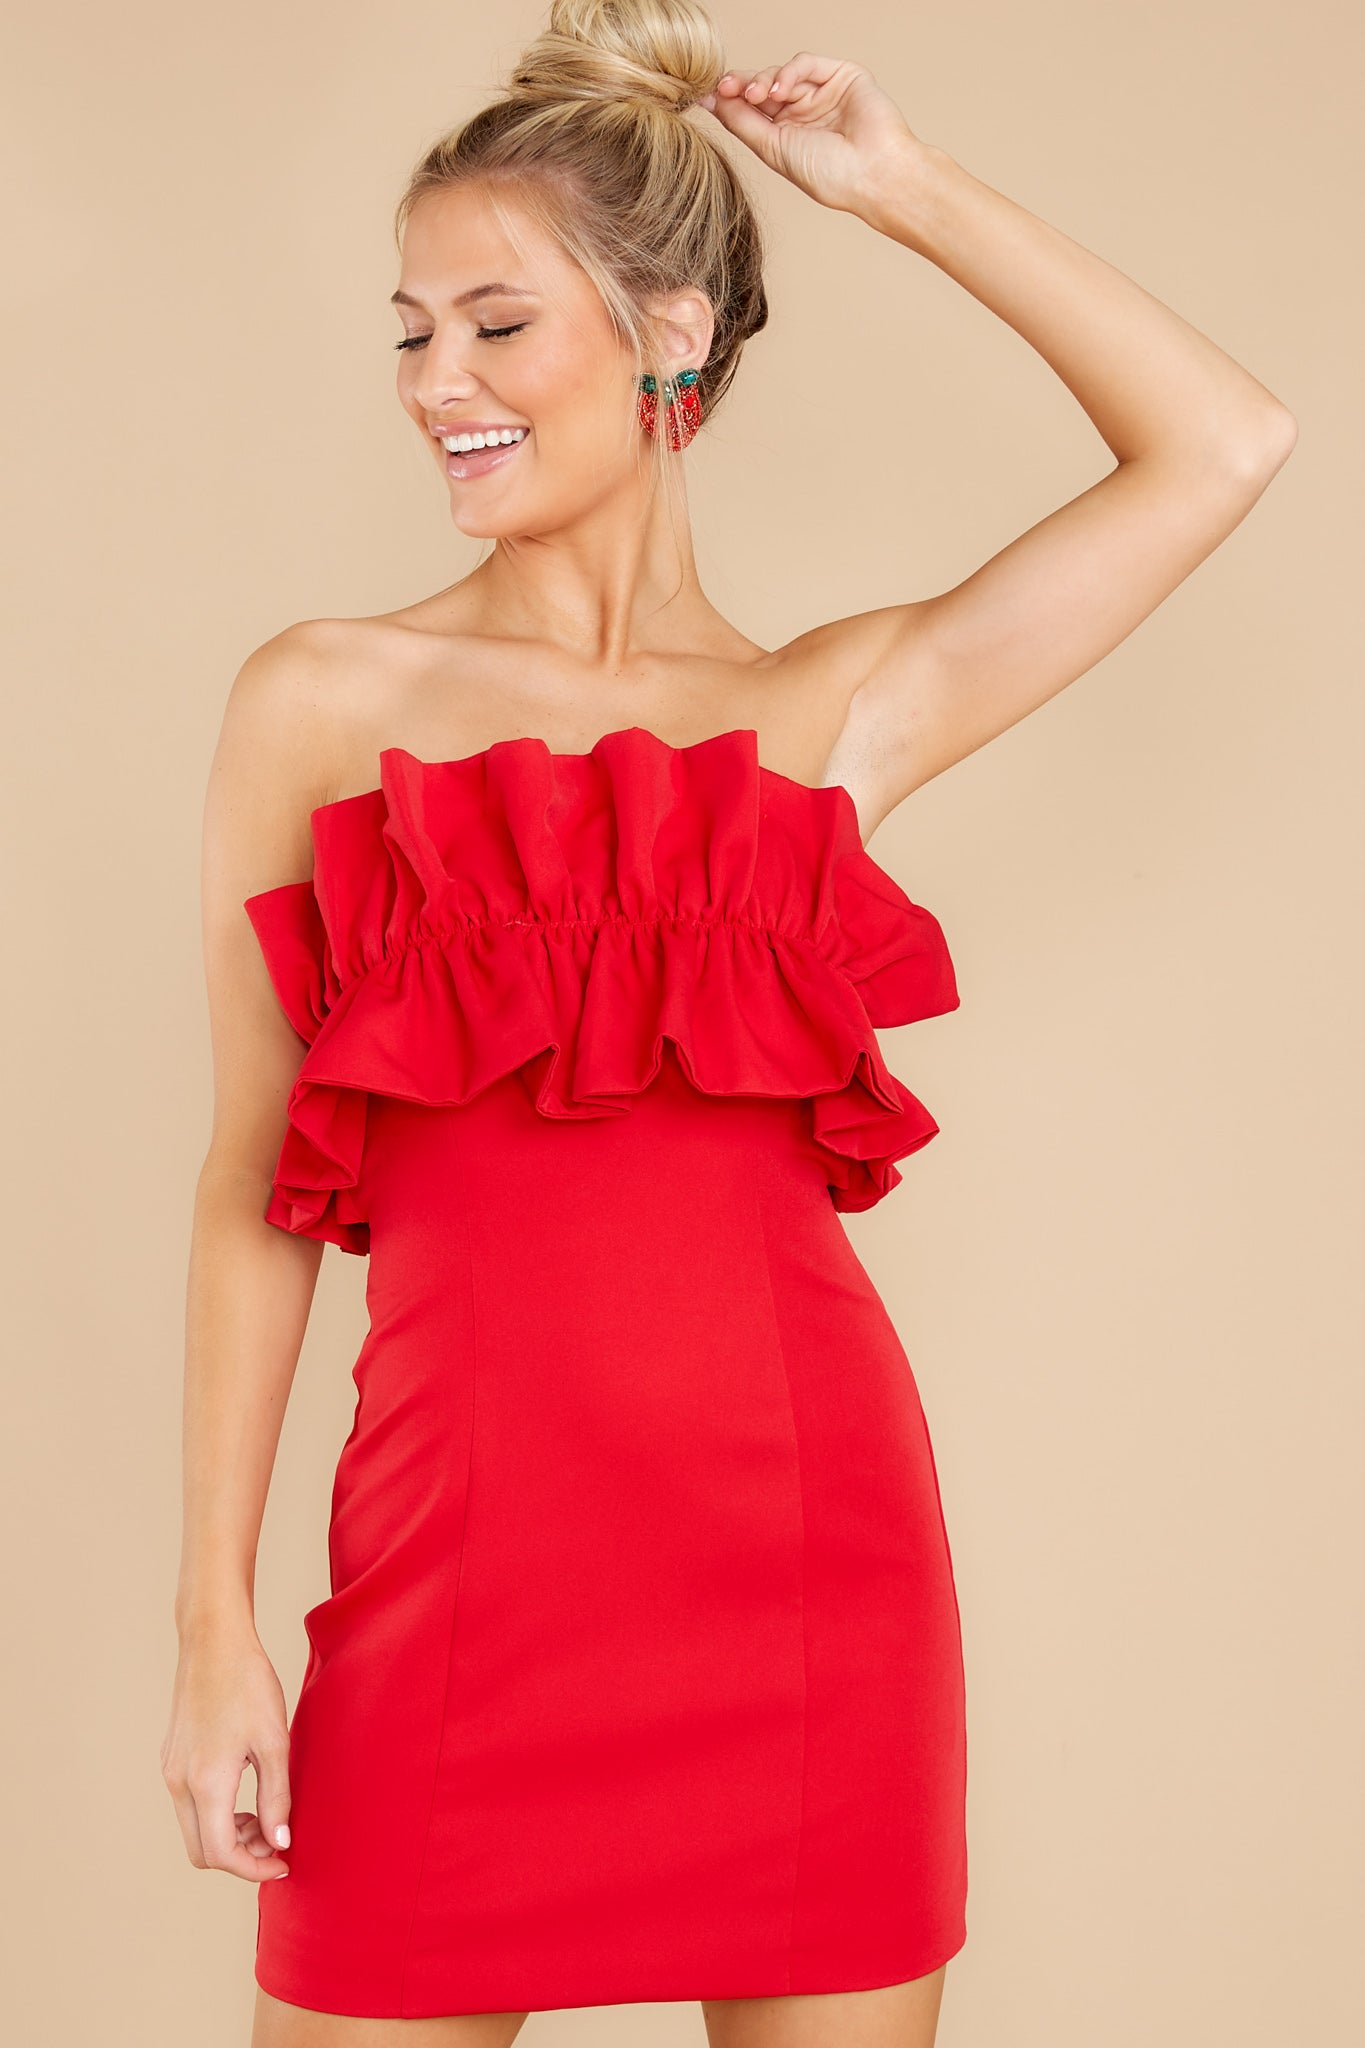 80s Fashion— What Women Wore in the 1980s Waltz By Red Dress $46.00 AT vintagedancer.com